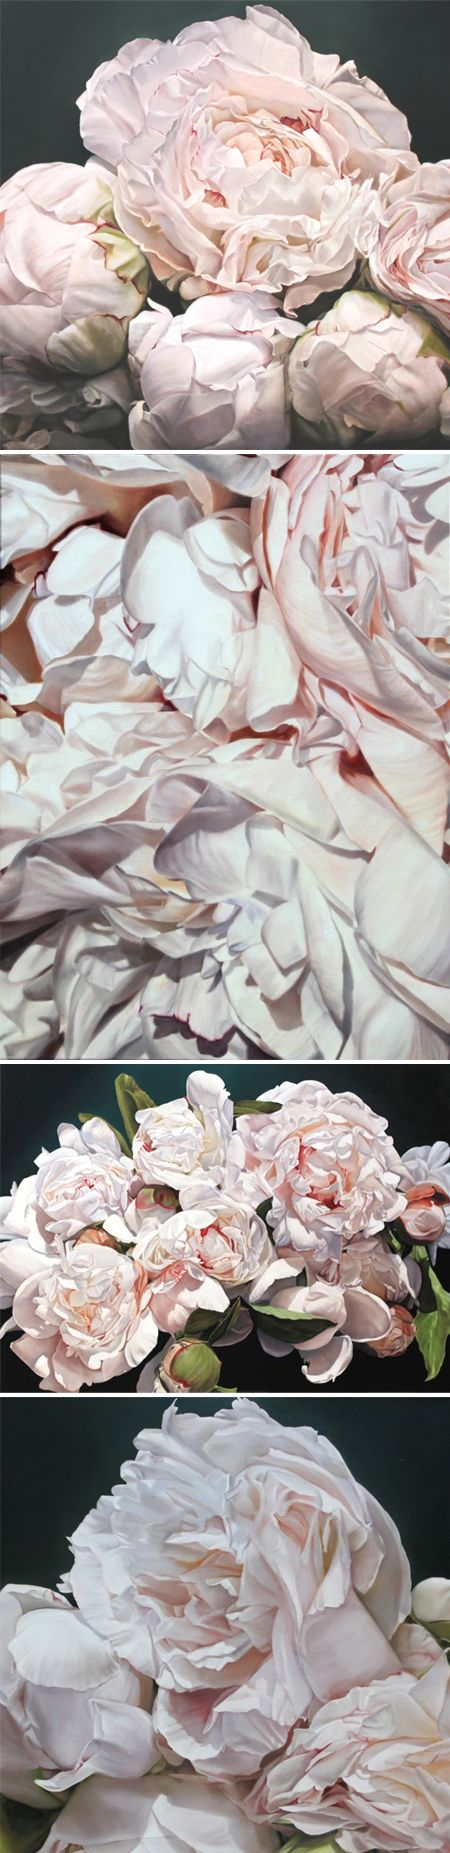 Peonies, painting by Thomas Darnell